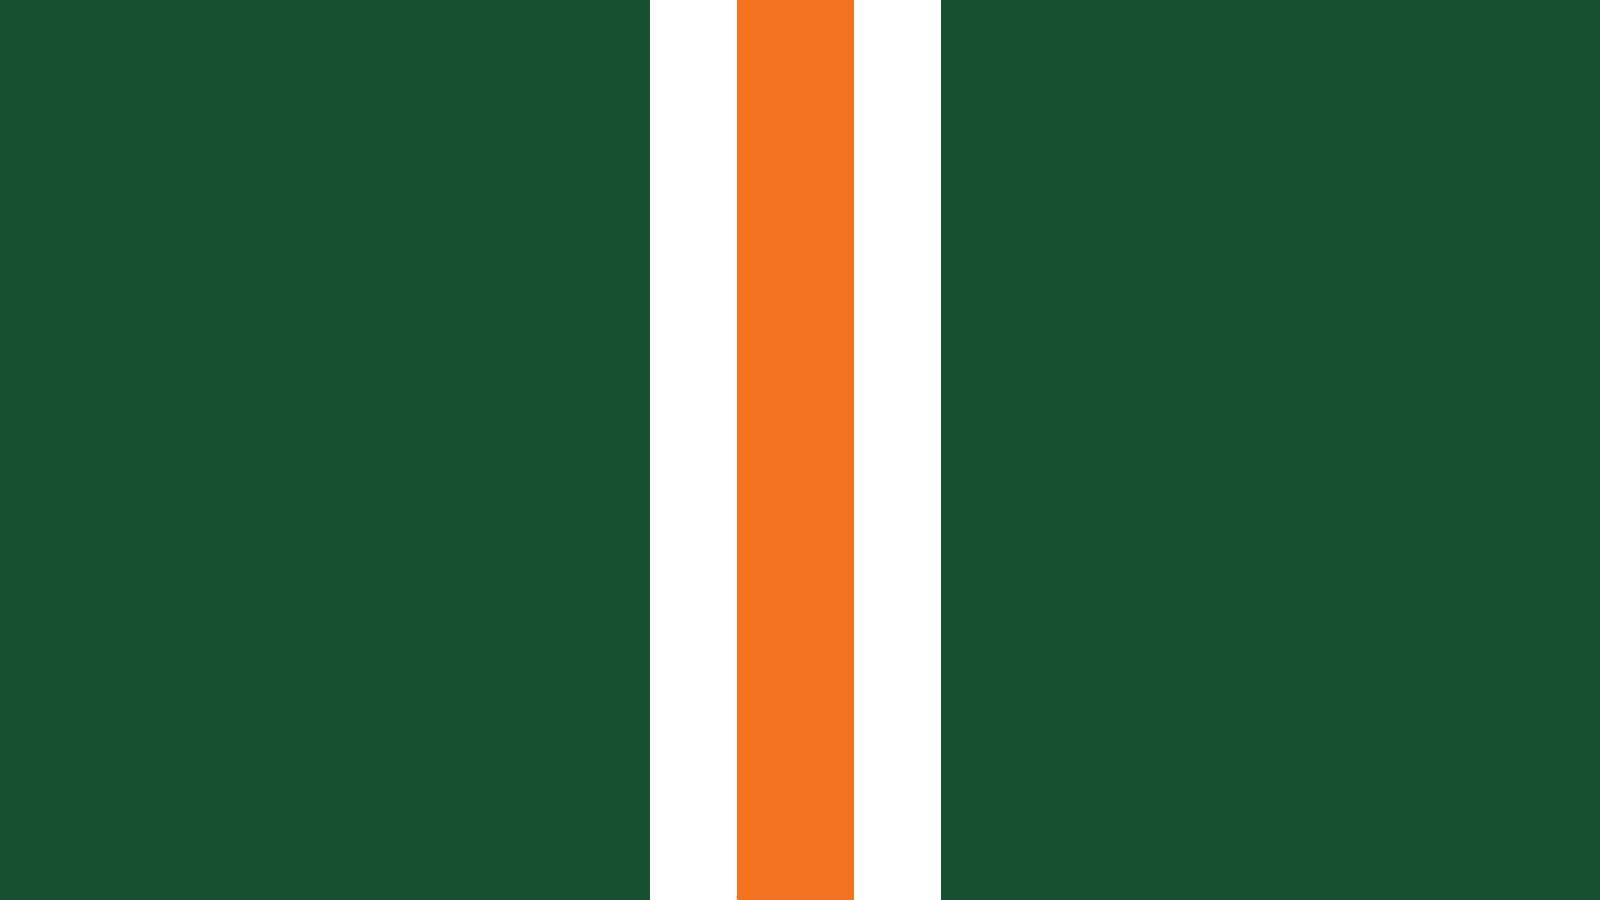 Duke Blue Devils at Miami Hurricanes